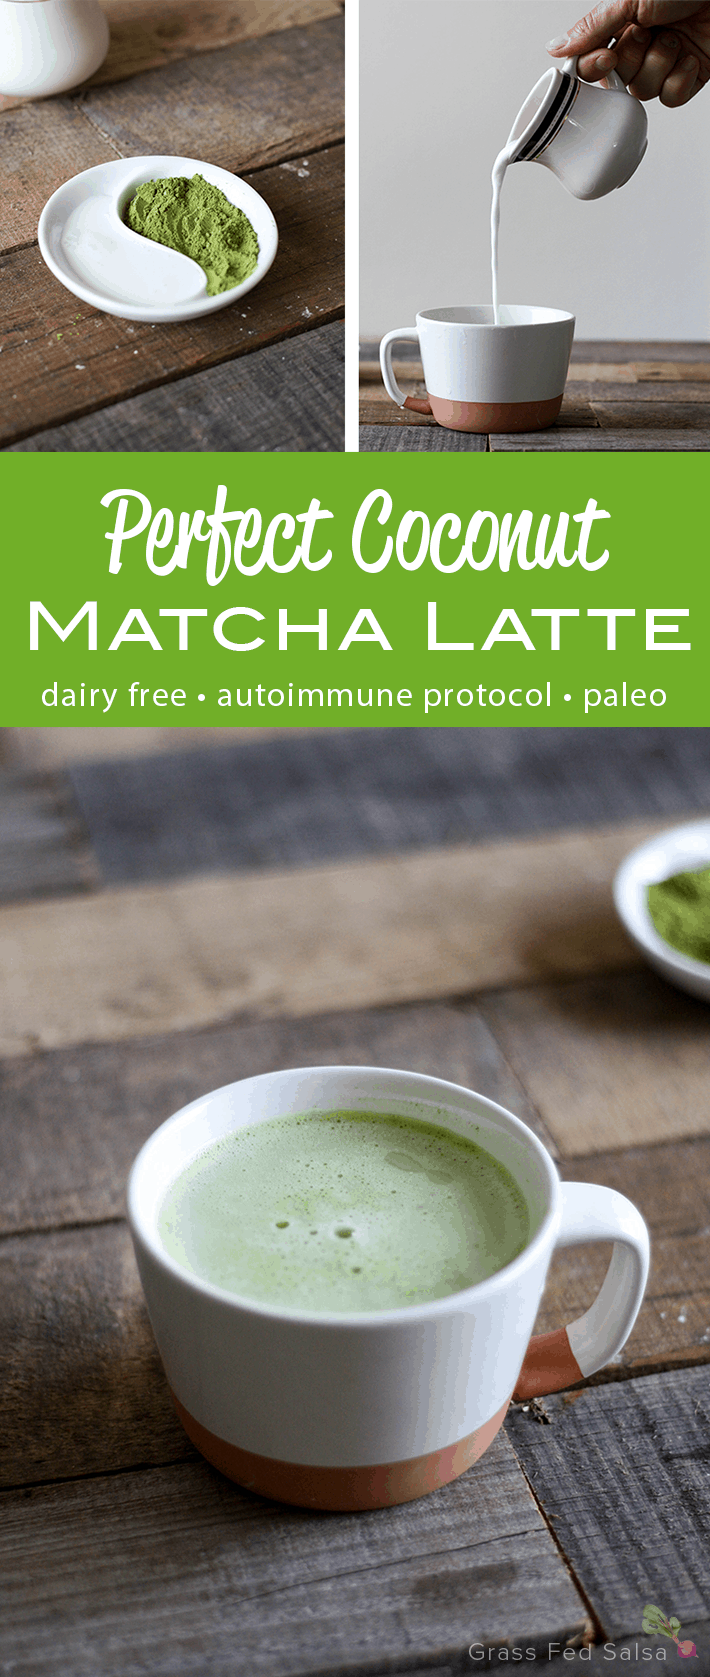 Perfect Matcha Latte Recipe - dairy free, AIP